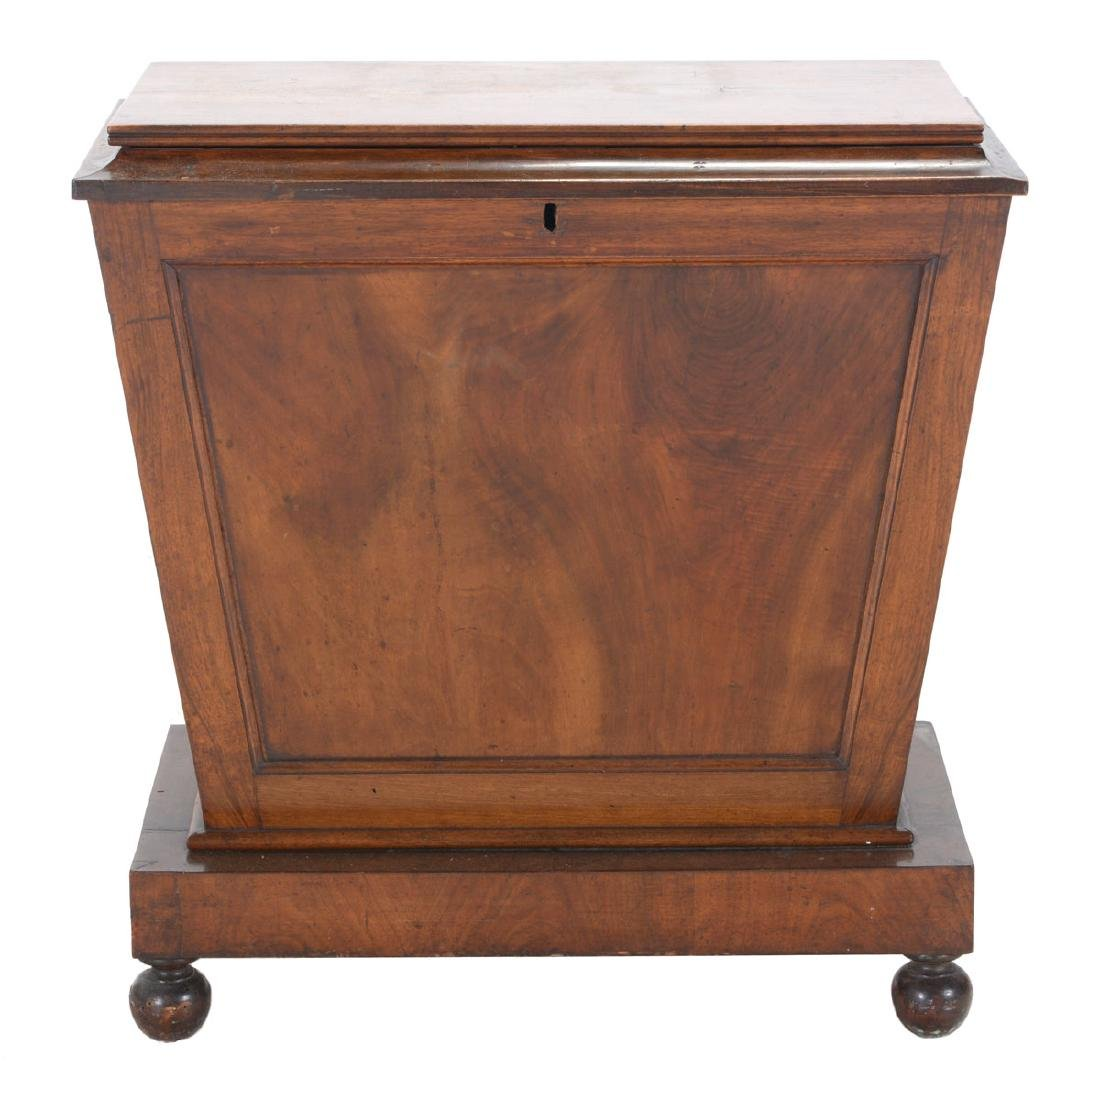 Regency Mahogany Sarcophagus Form Chest, First Quarter